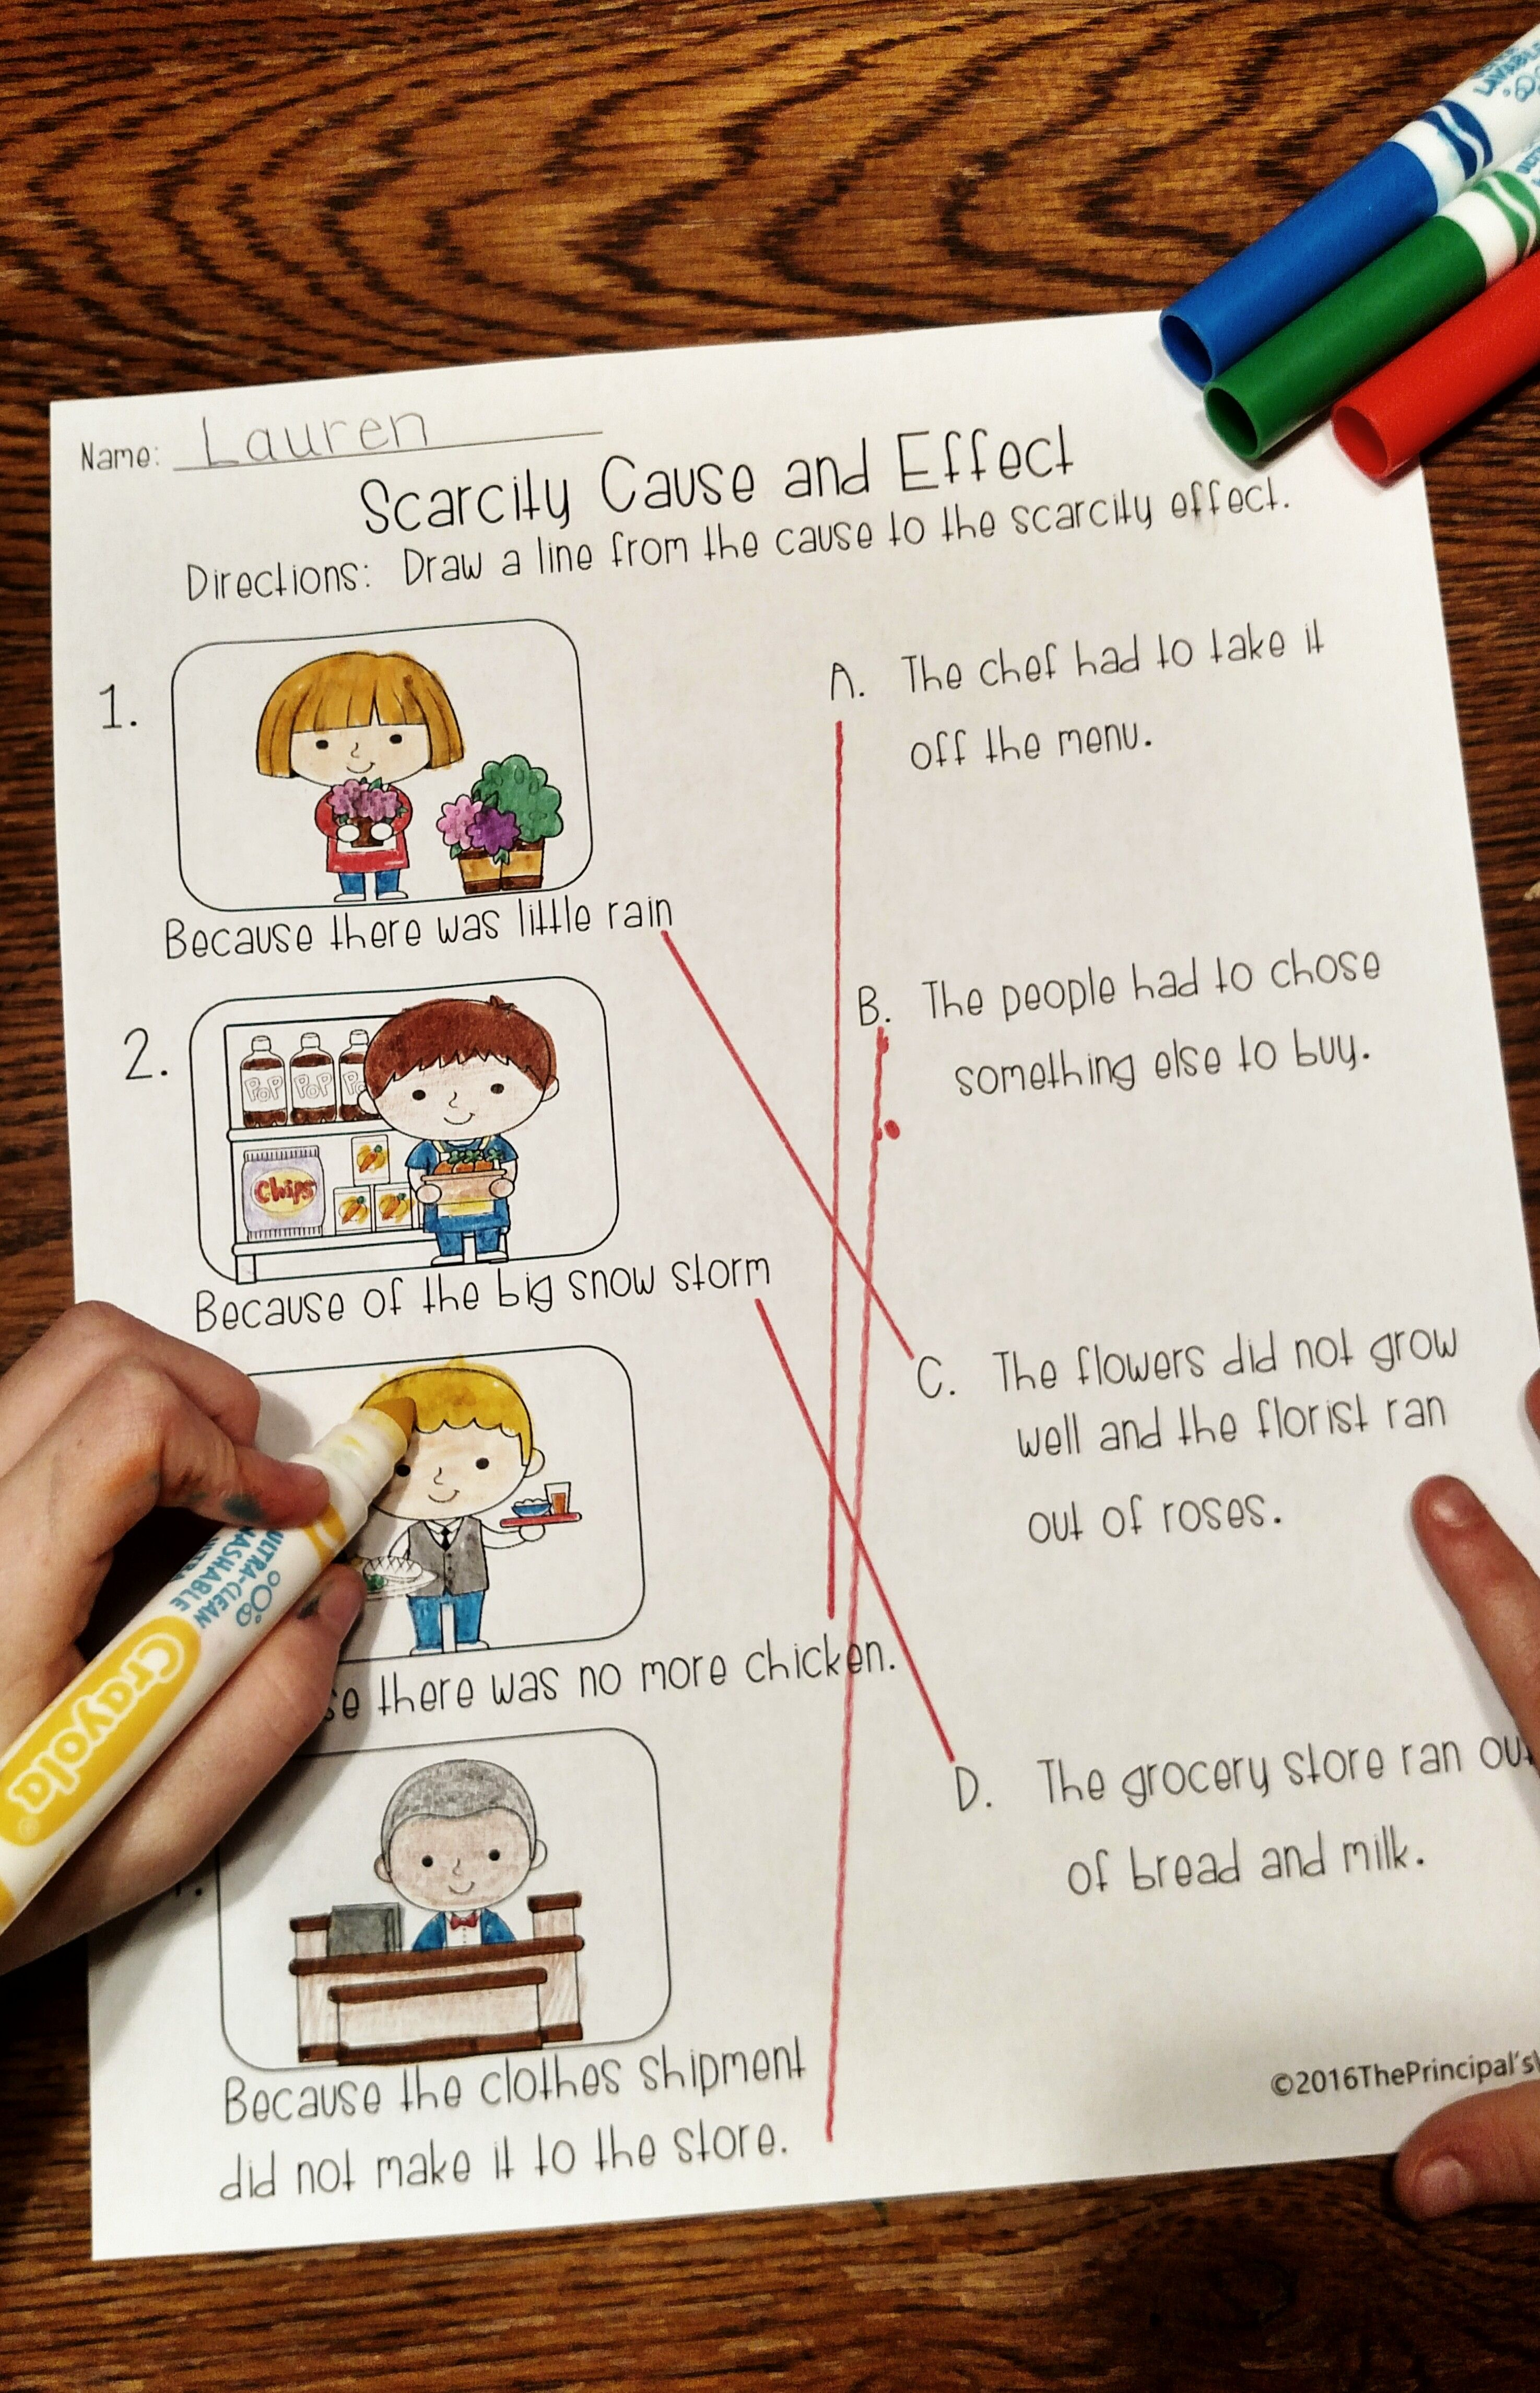 Basic Economics Worksheets Worksheets for all | Download and Share ...